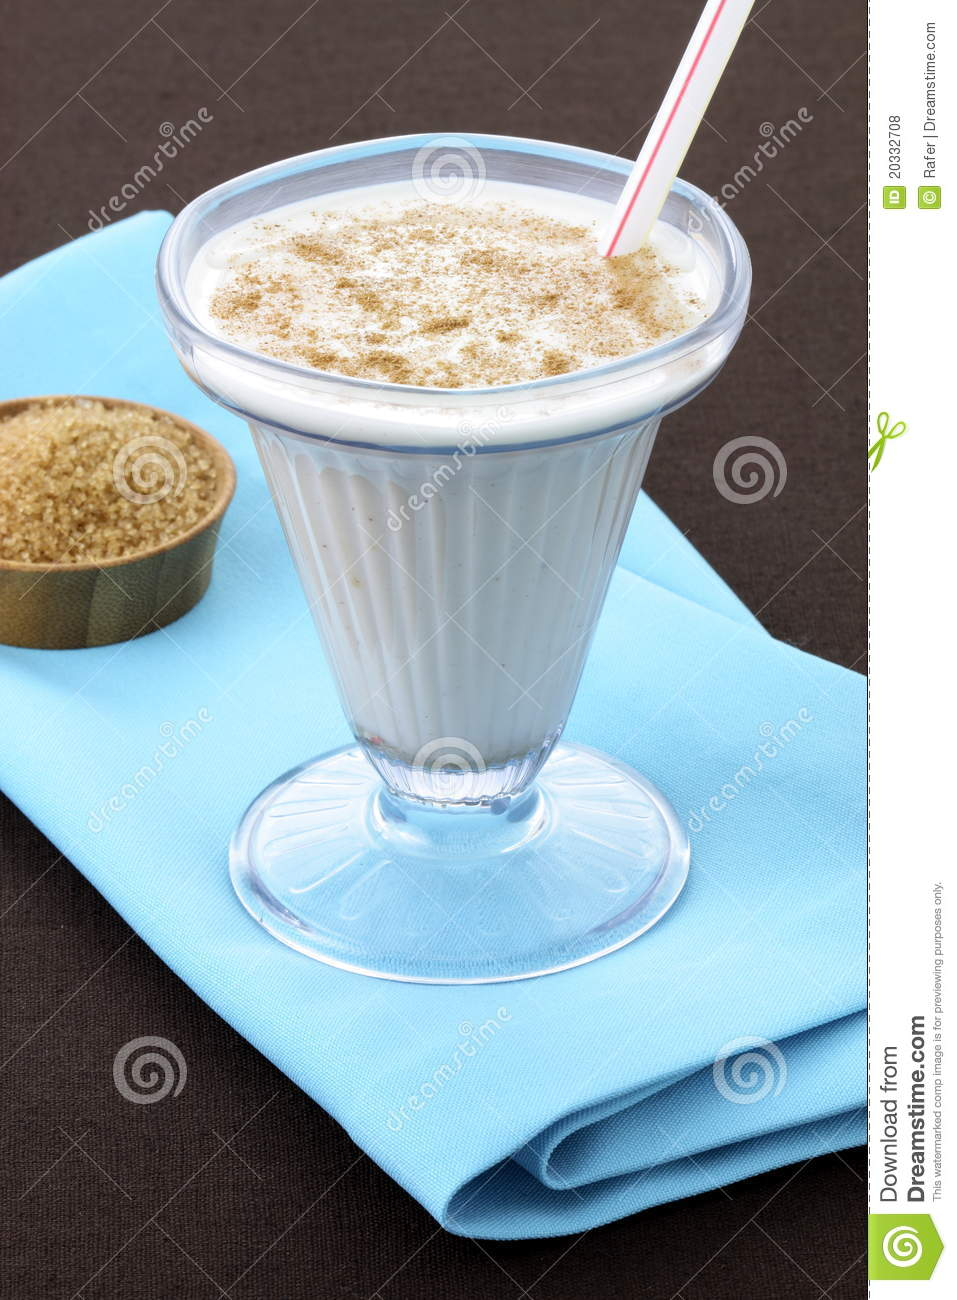 Delicious mexican avena or oatmeal drink served hot or cold as desire.